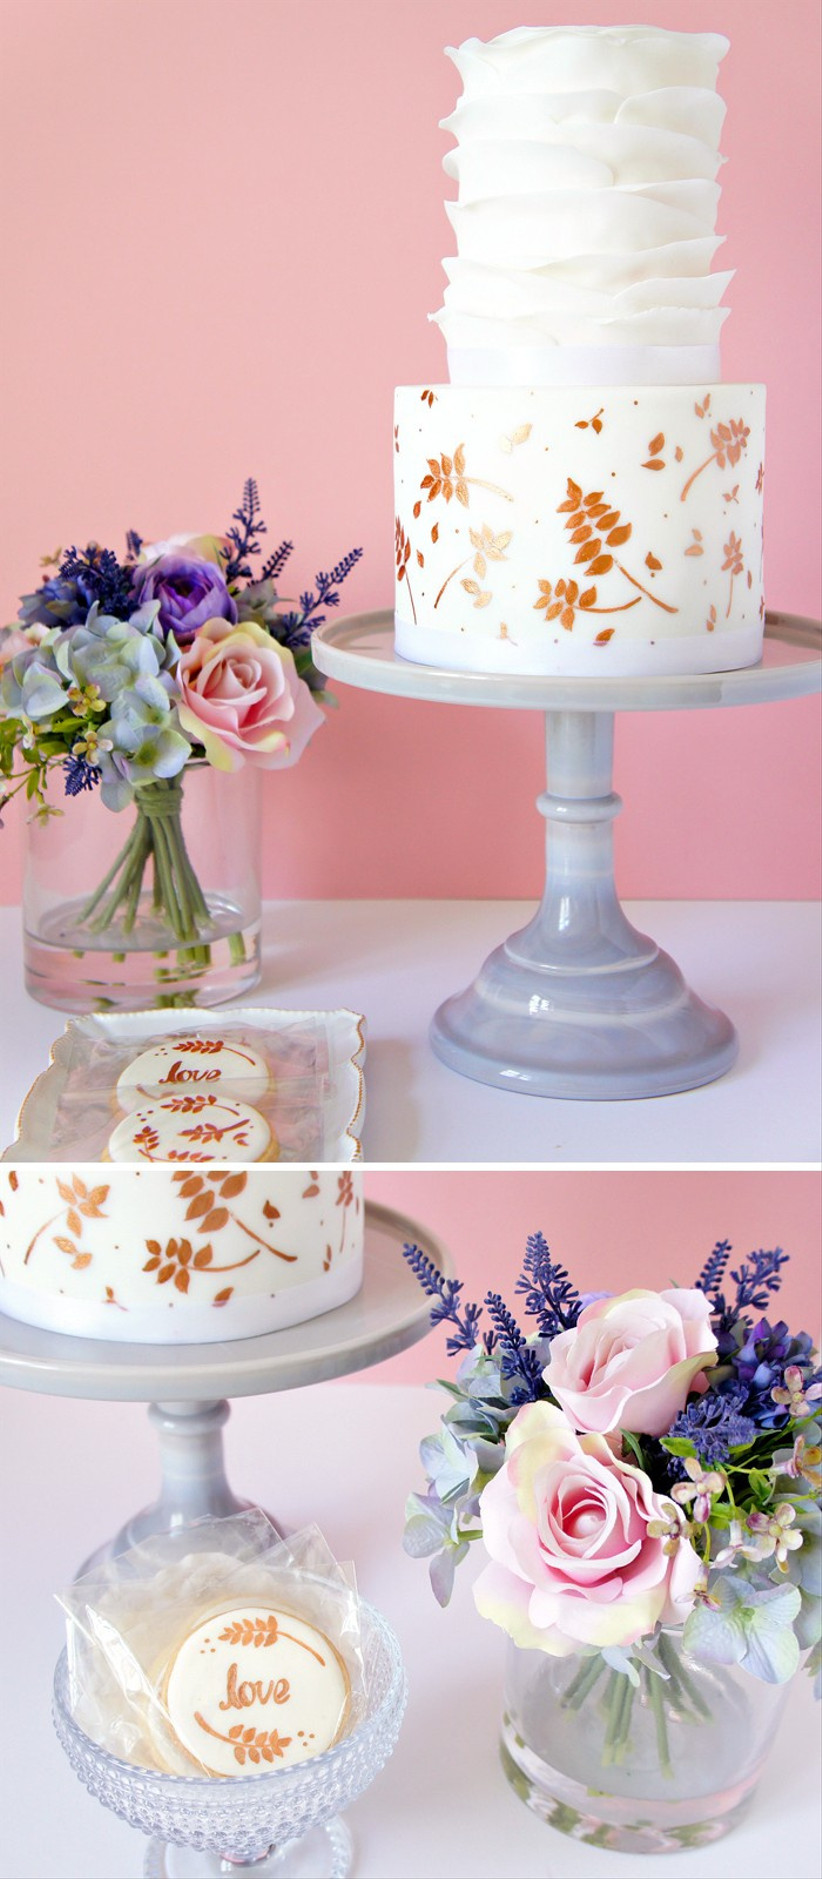 metallic-cake-display